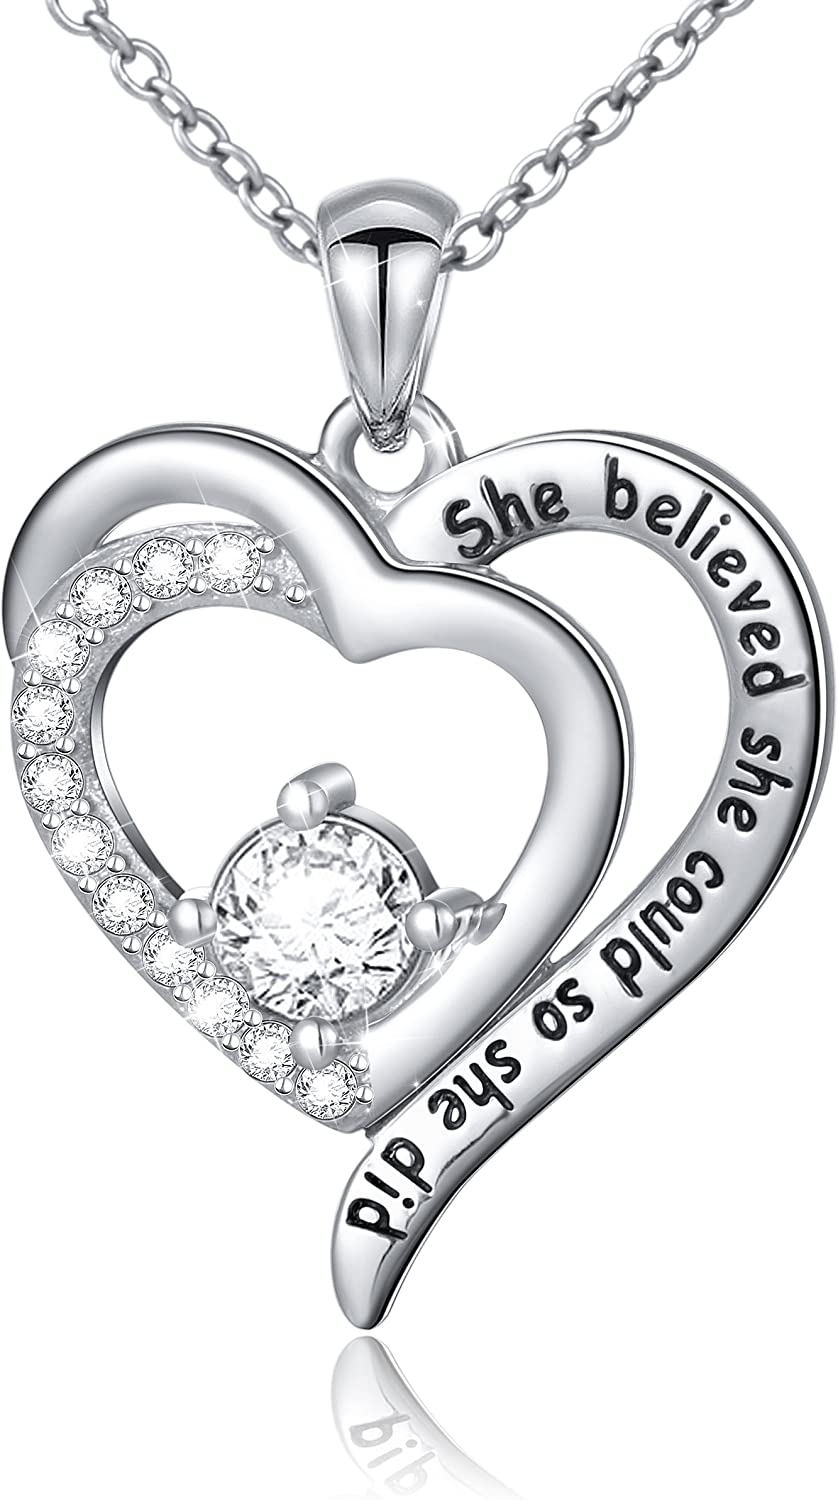 """Sterling Silver Engraved Inspirational Necklace Bracelet""""She Believed She Could So She Did"""" Gift for Her, Women, Friendship"""